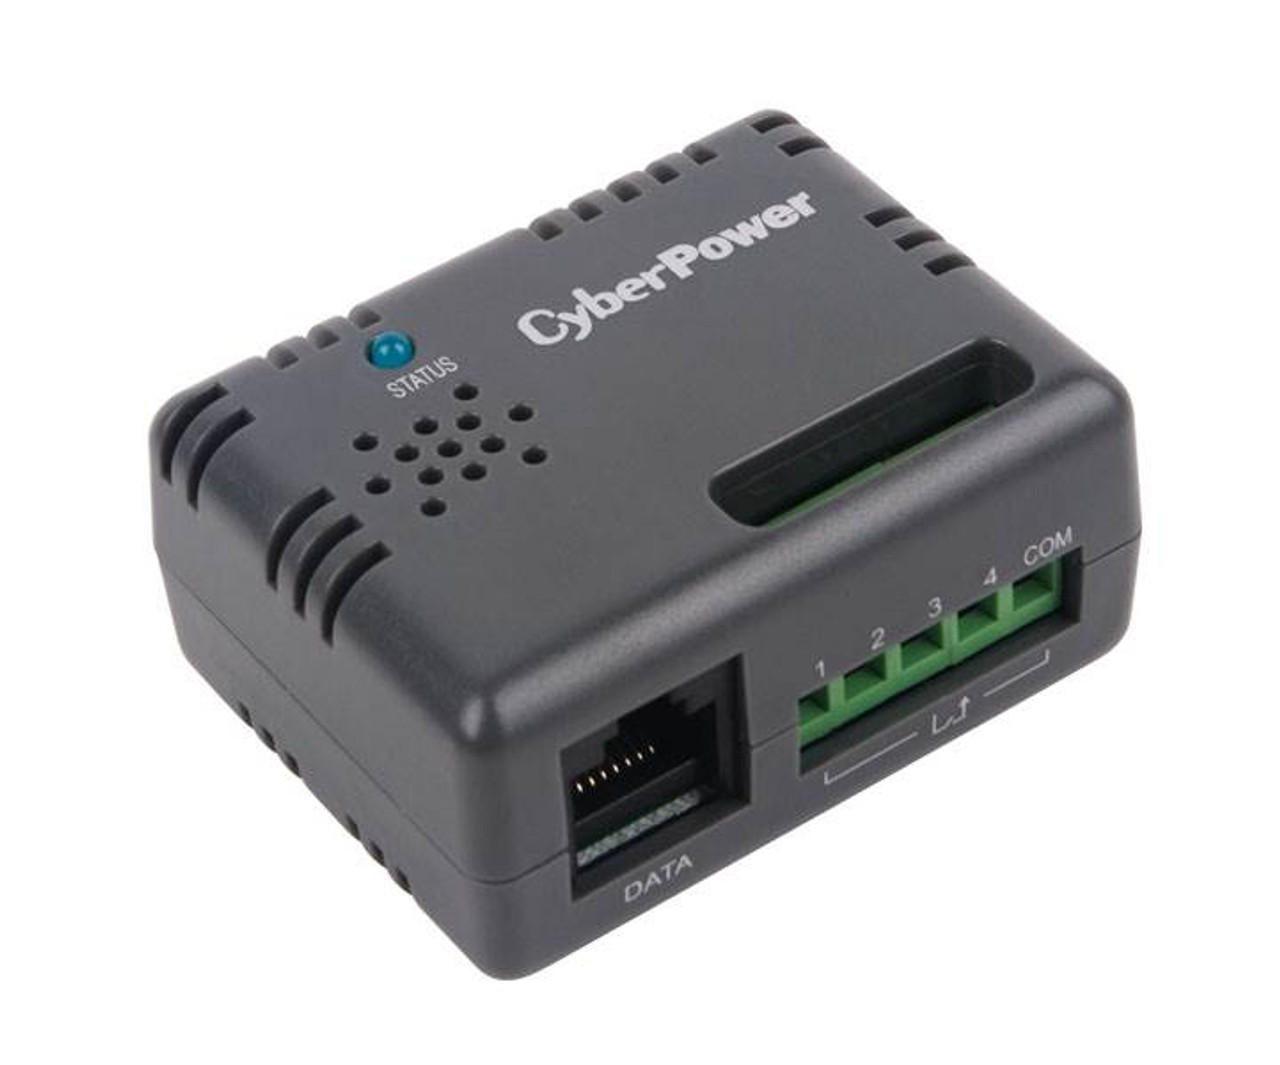 Image for CyberPower Enviro Sensor - Temp & Humidity Sensor for Pro & Online Series UPS CX Computer Superstore